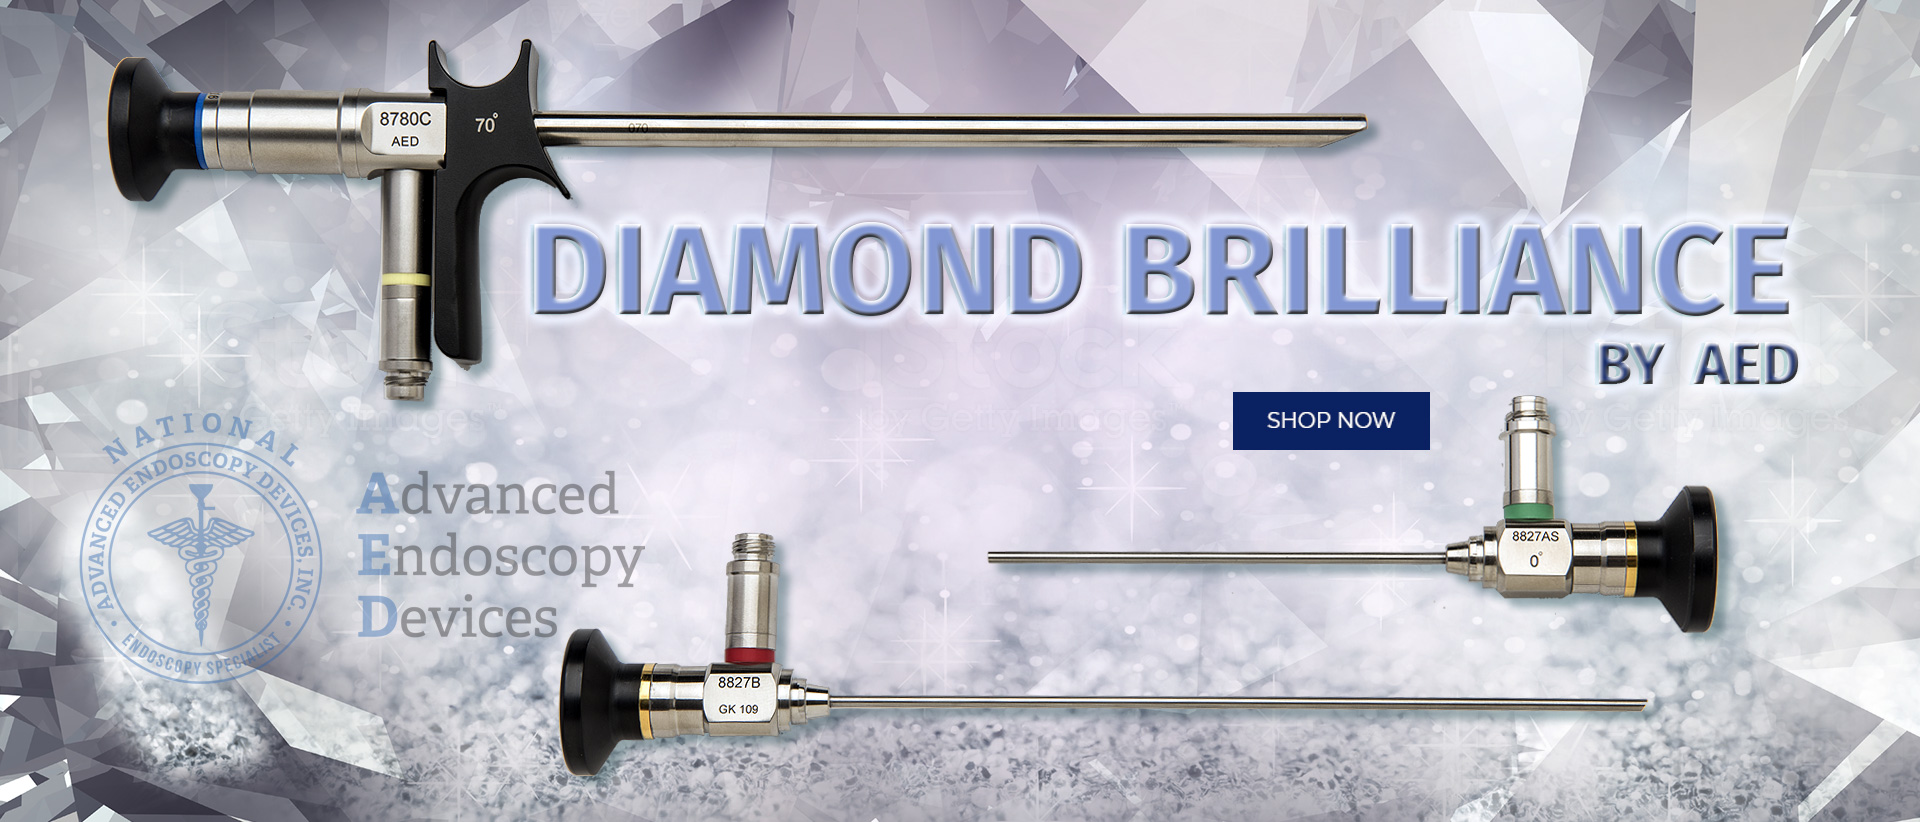 Diamond Brilliance